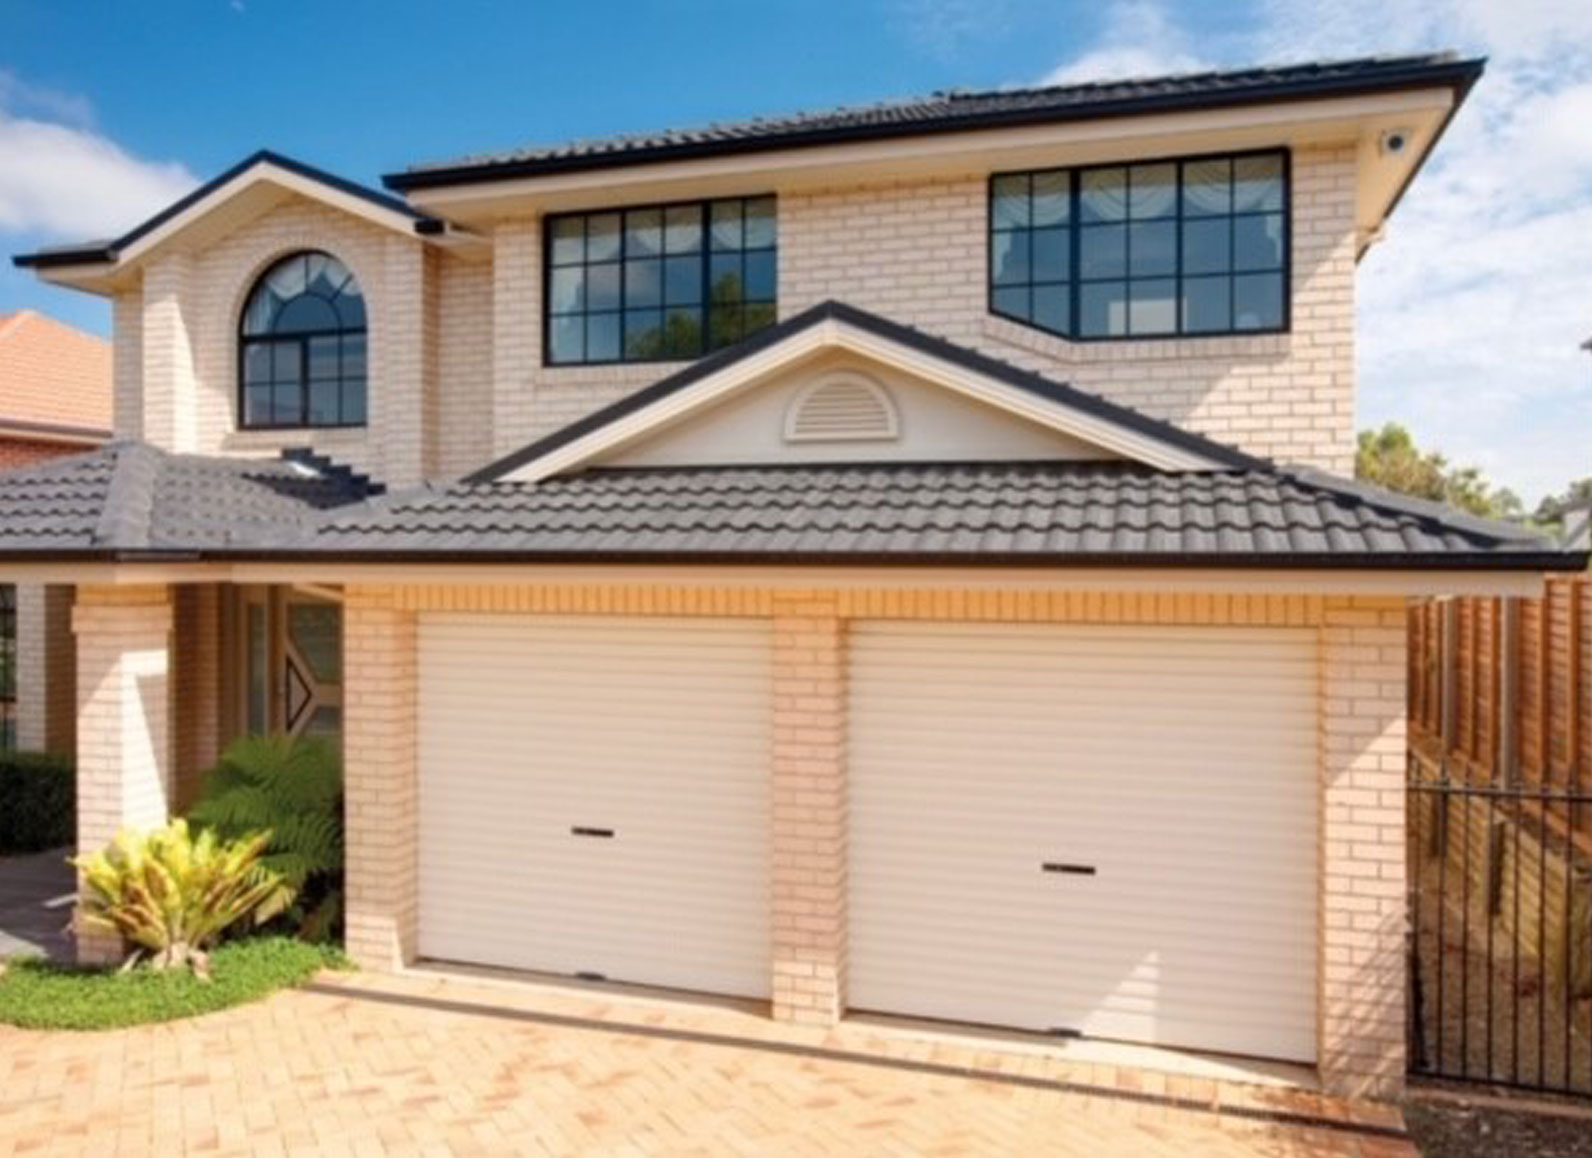 7 indications your garage door needs a service